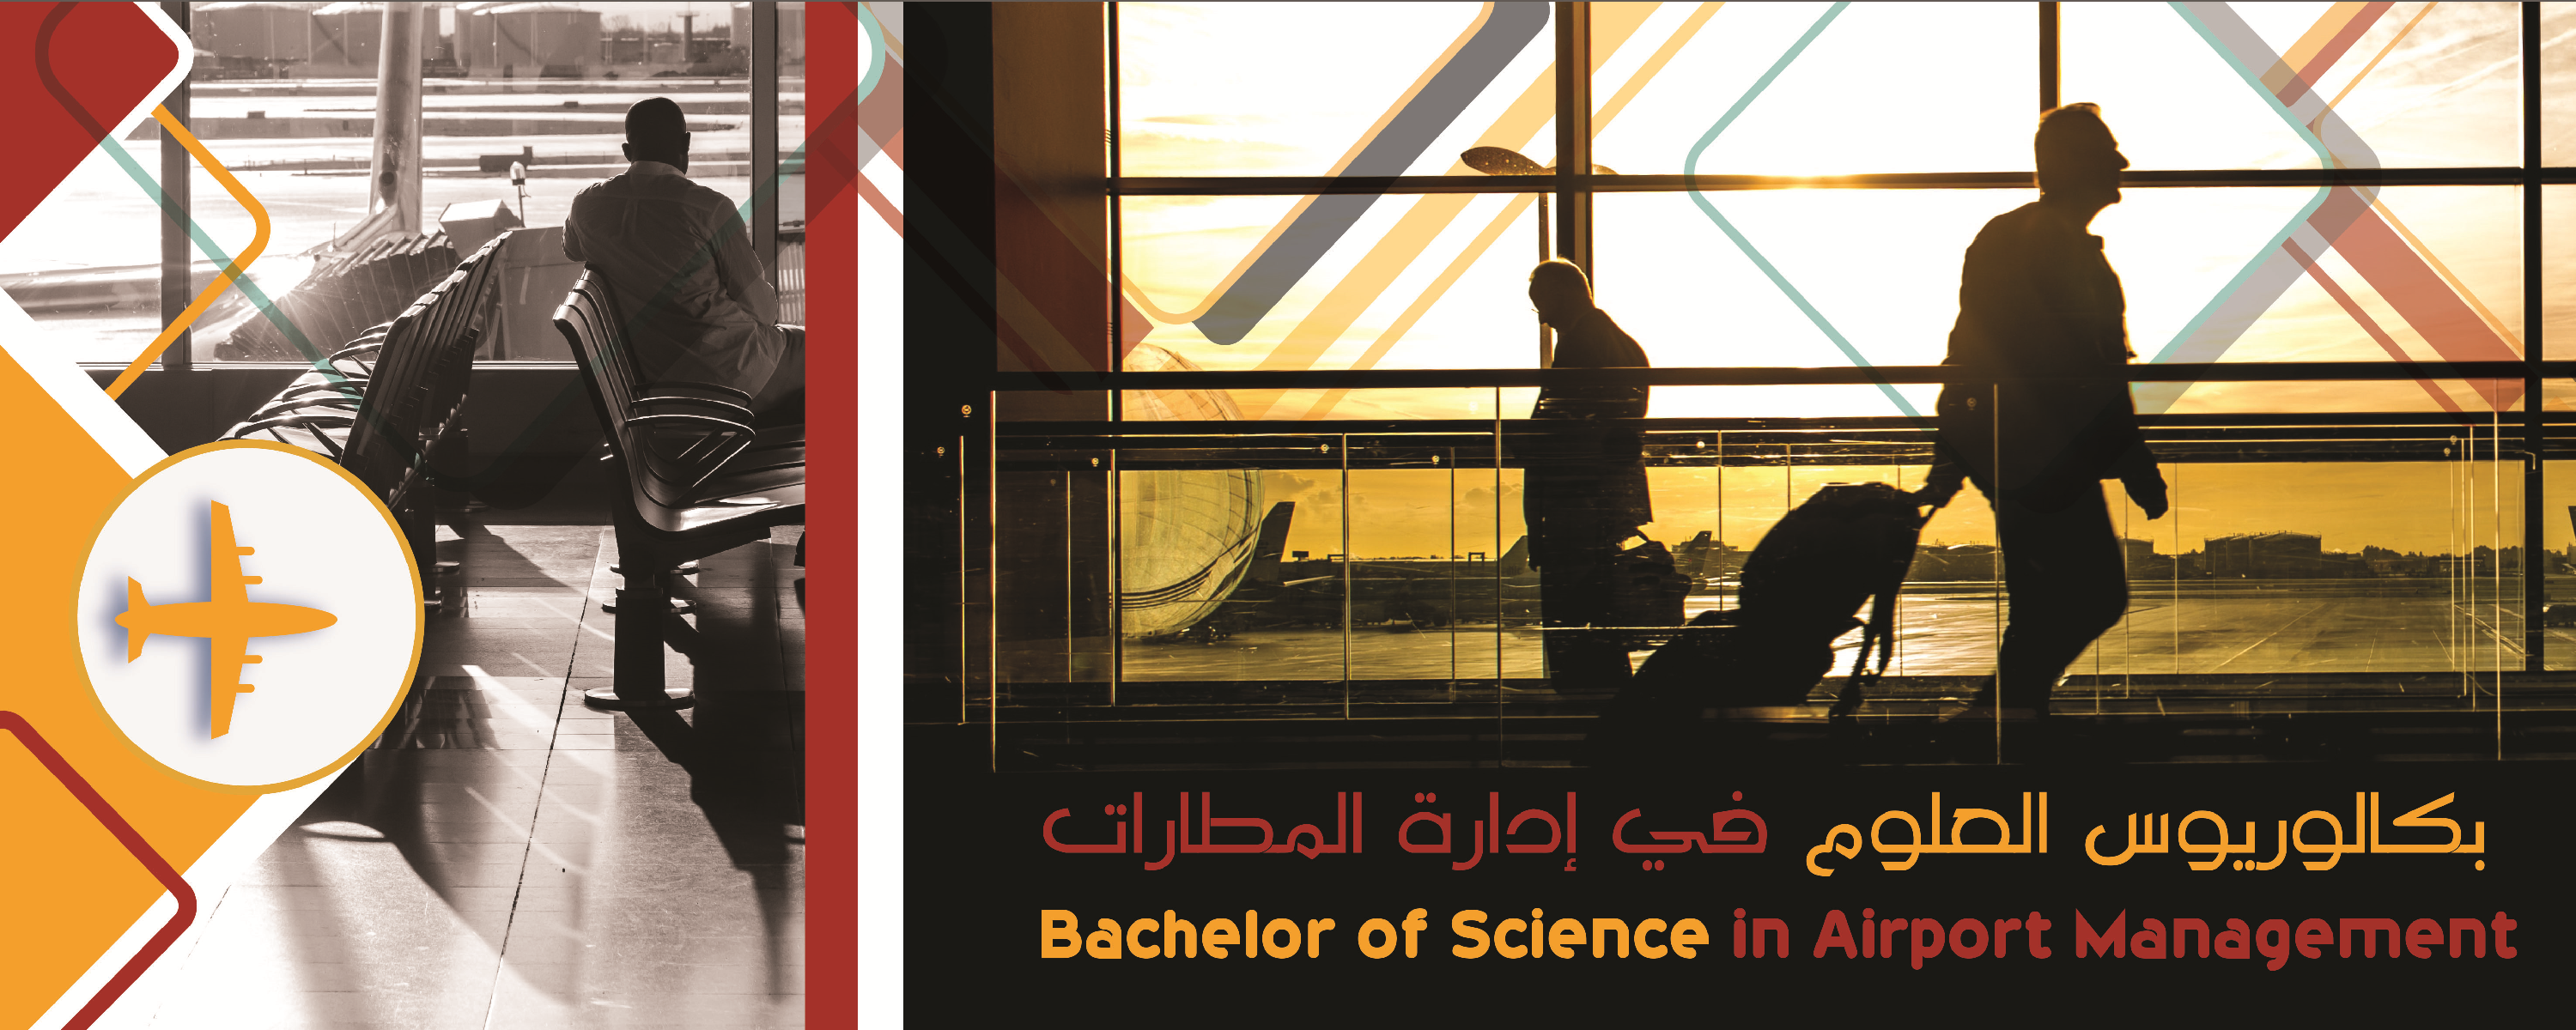 Bachelor of Science in Airport Management, Muscat, Oman 2019/2020